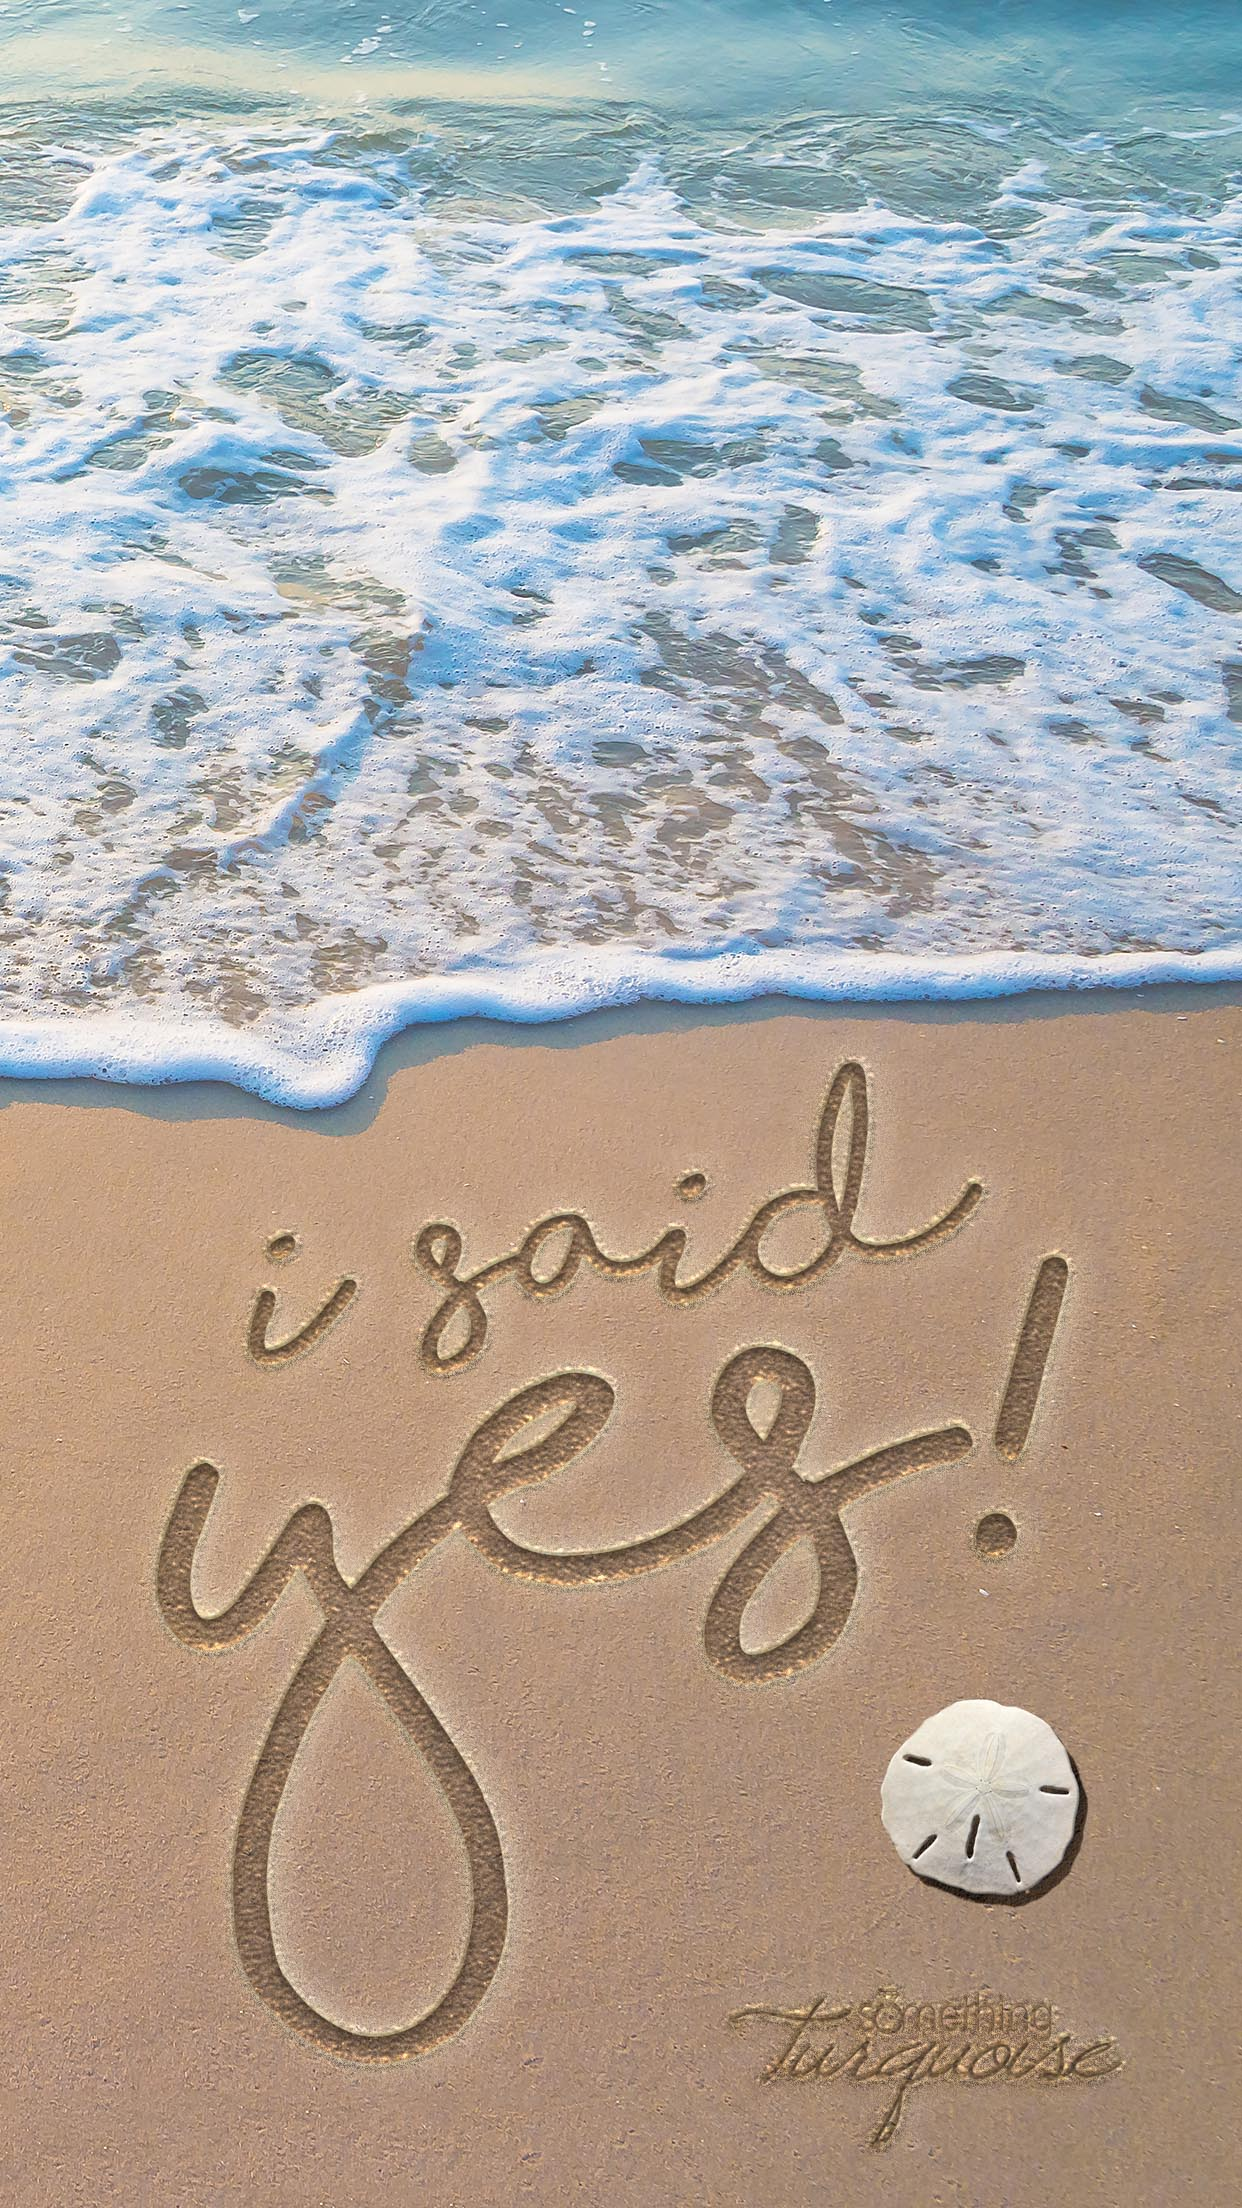 Download this darling I said Yes beach background for your iPhone!